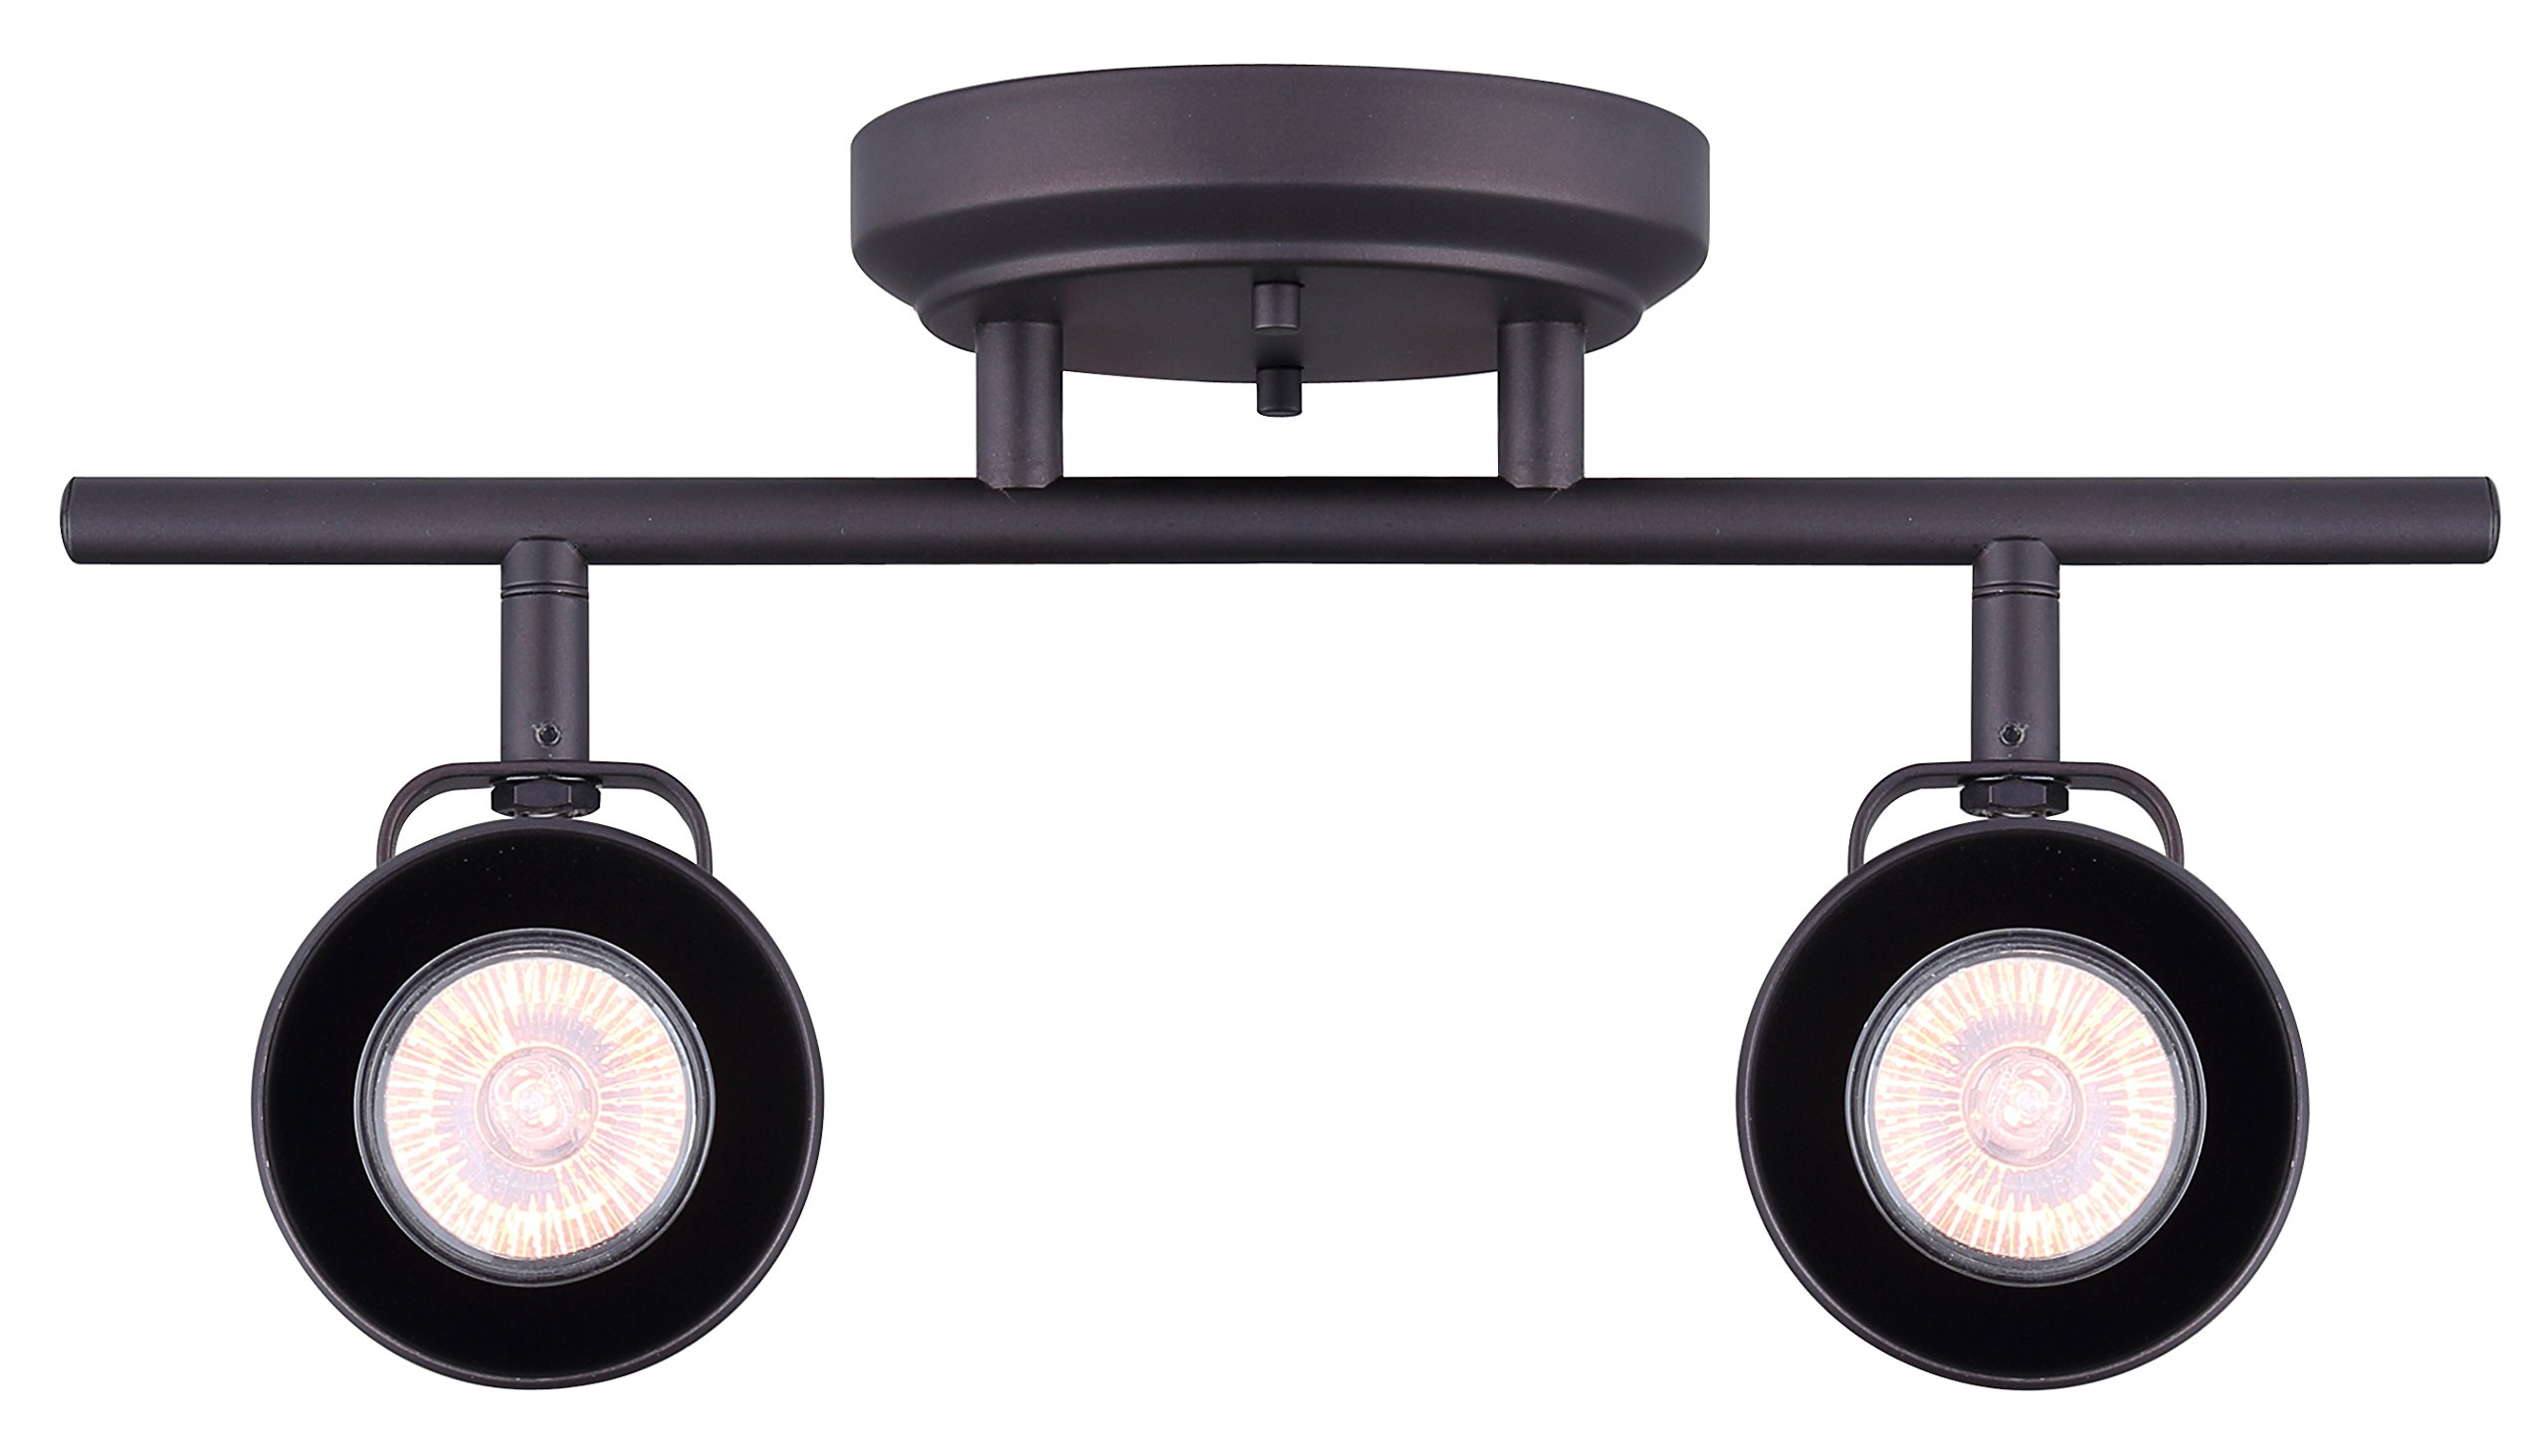 CANARM IT622A02ORB10 Ltd Polo 2 Light Track Rail Adjustable Heads, Oil Rubbed Bronze